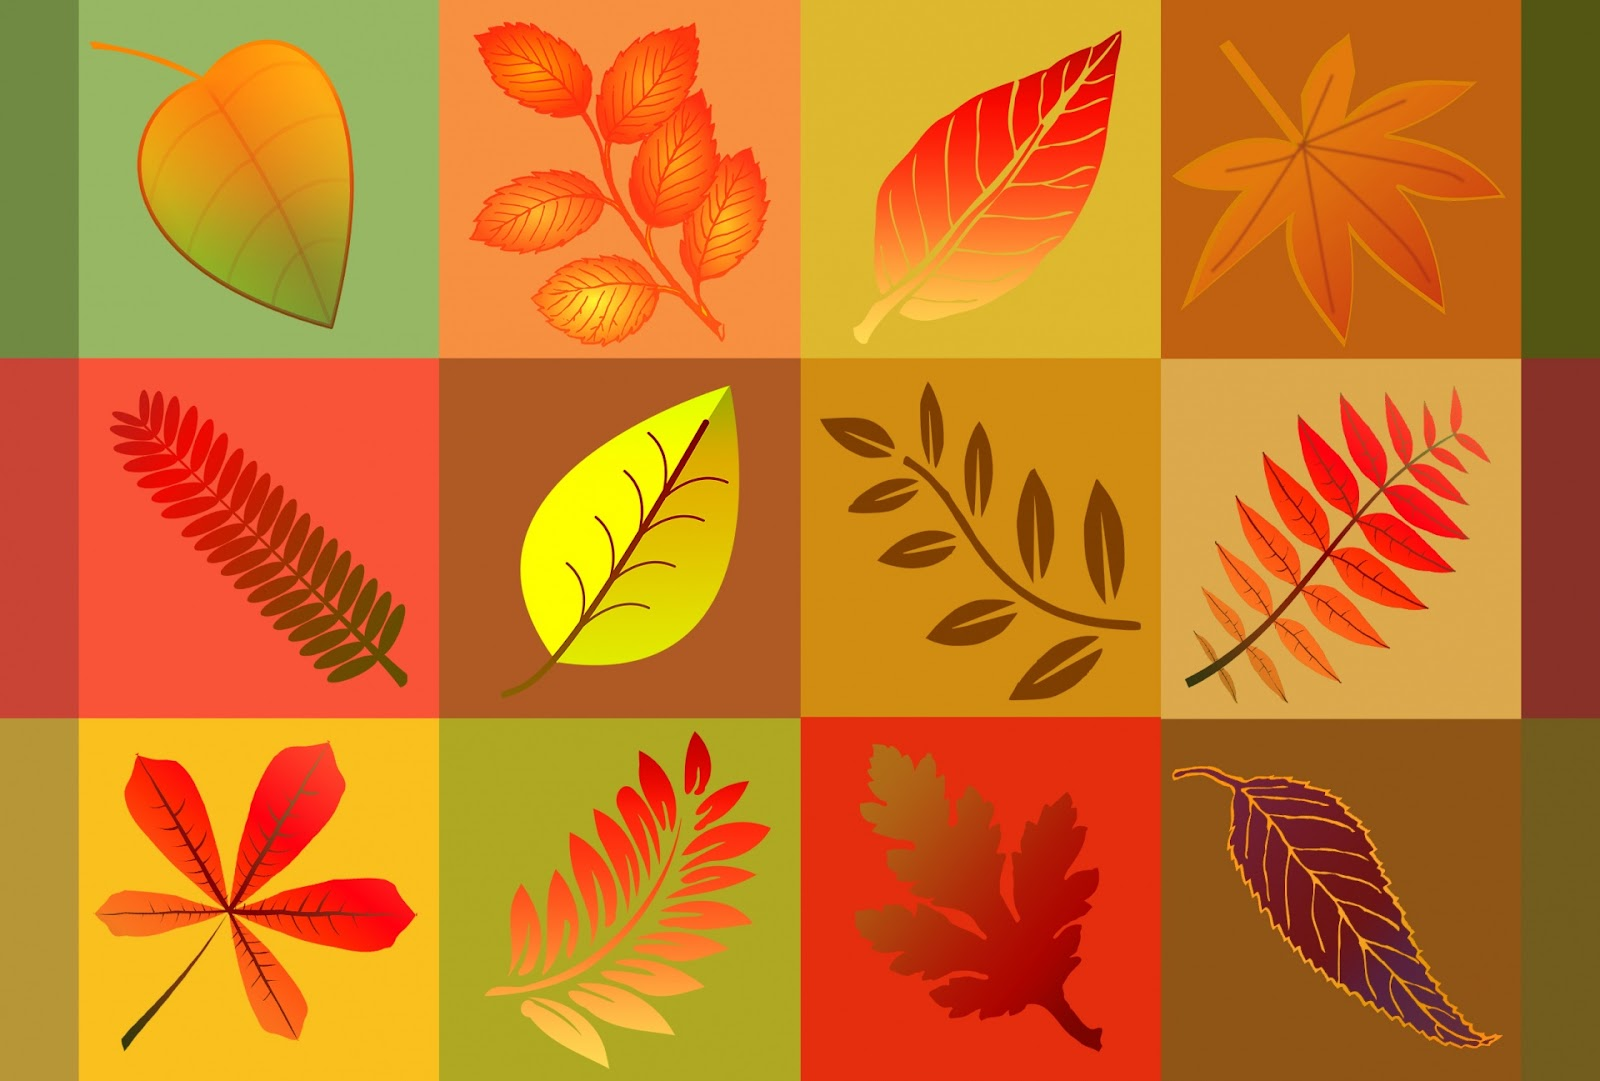 Fall Leaves Background Free Stock Photo - Public Domain Pictures